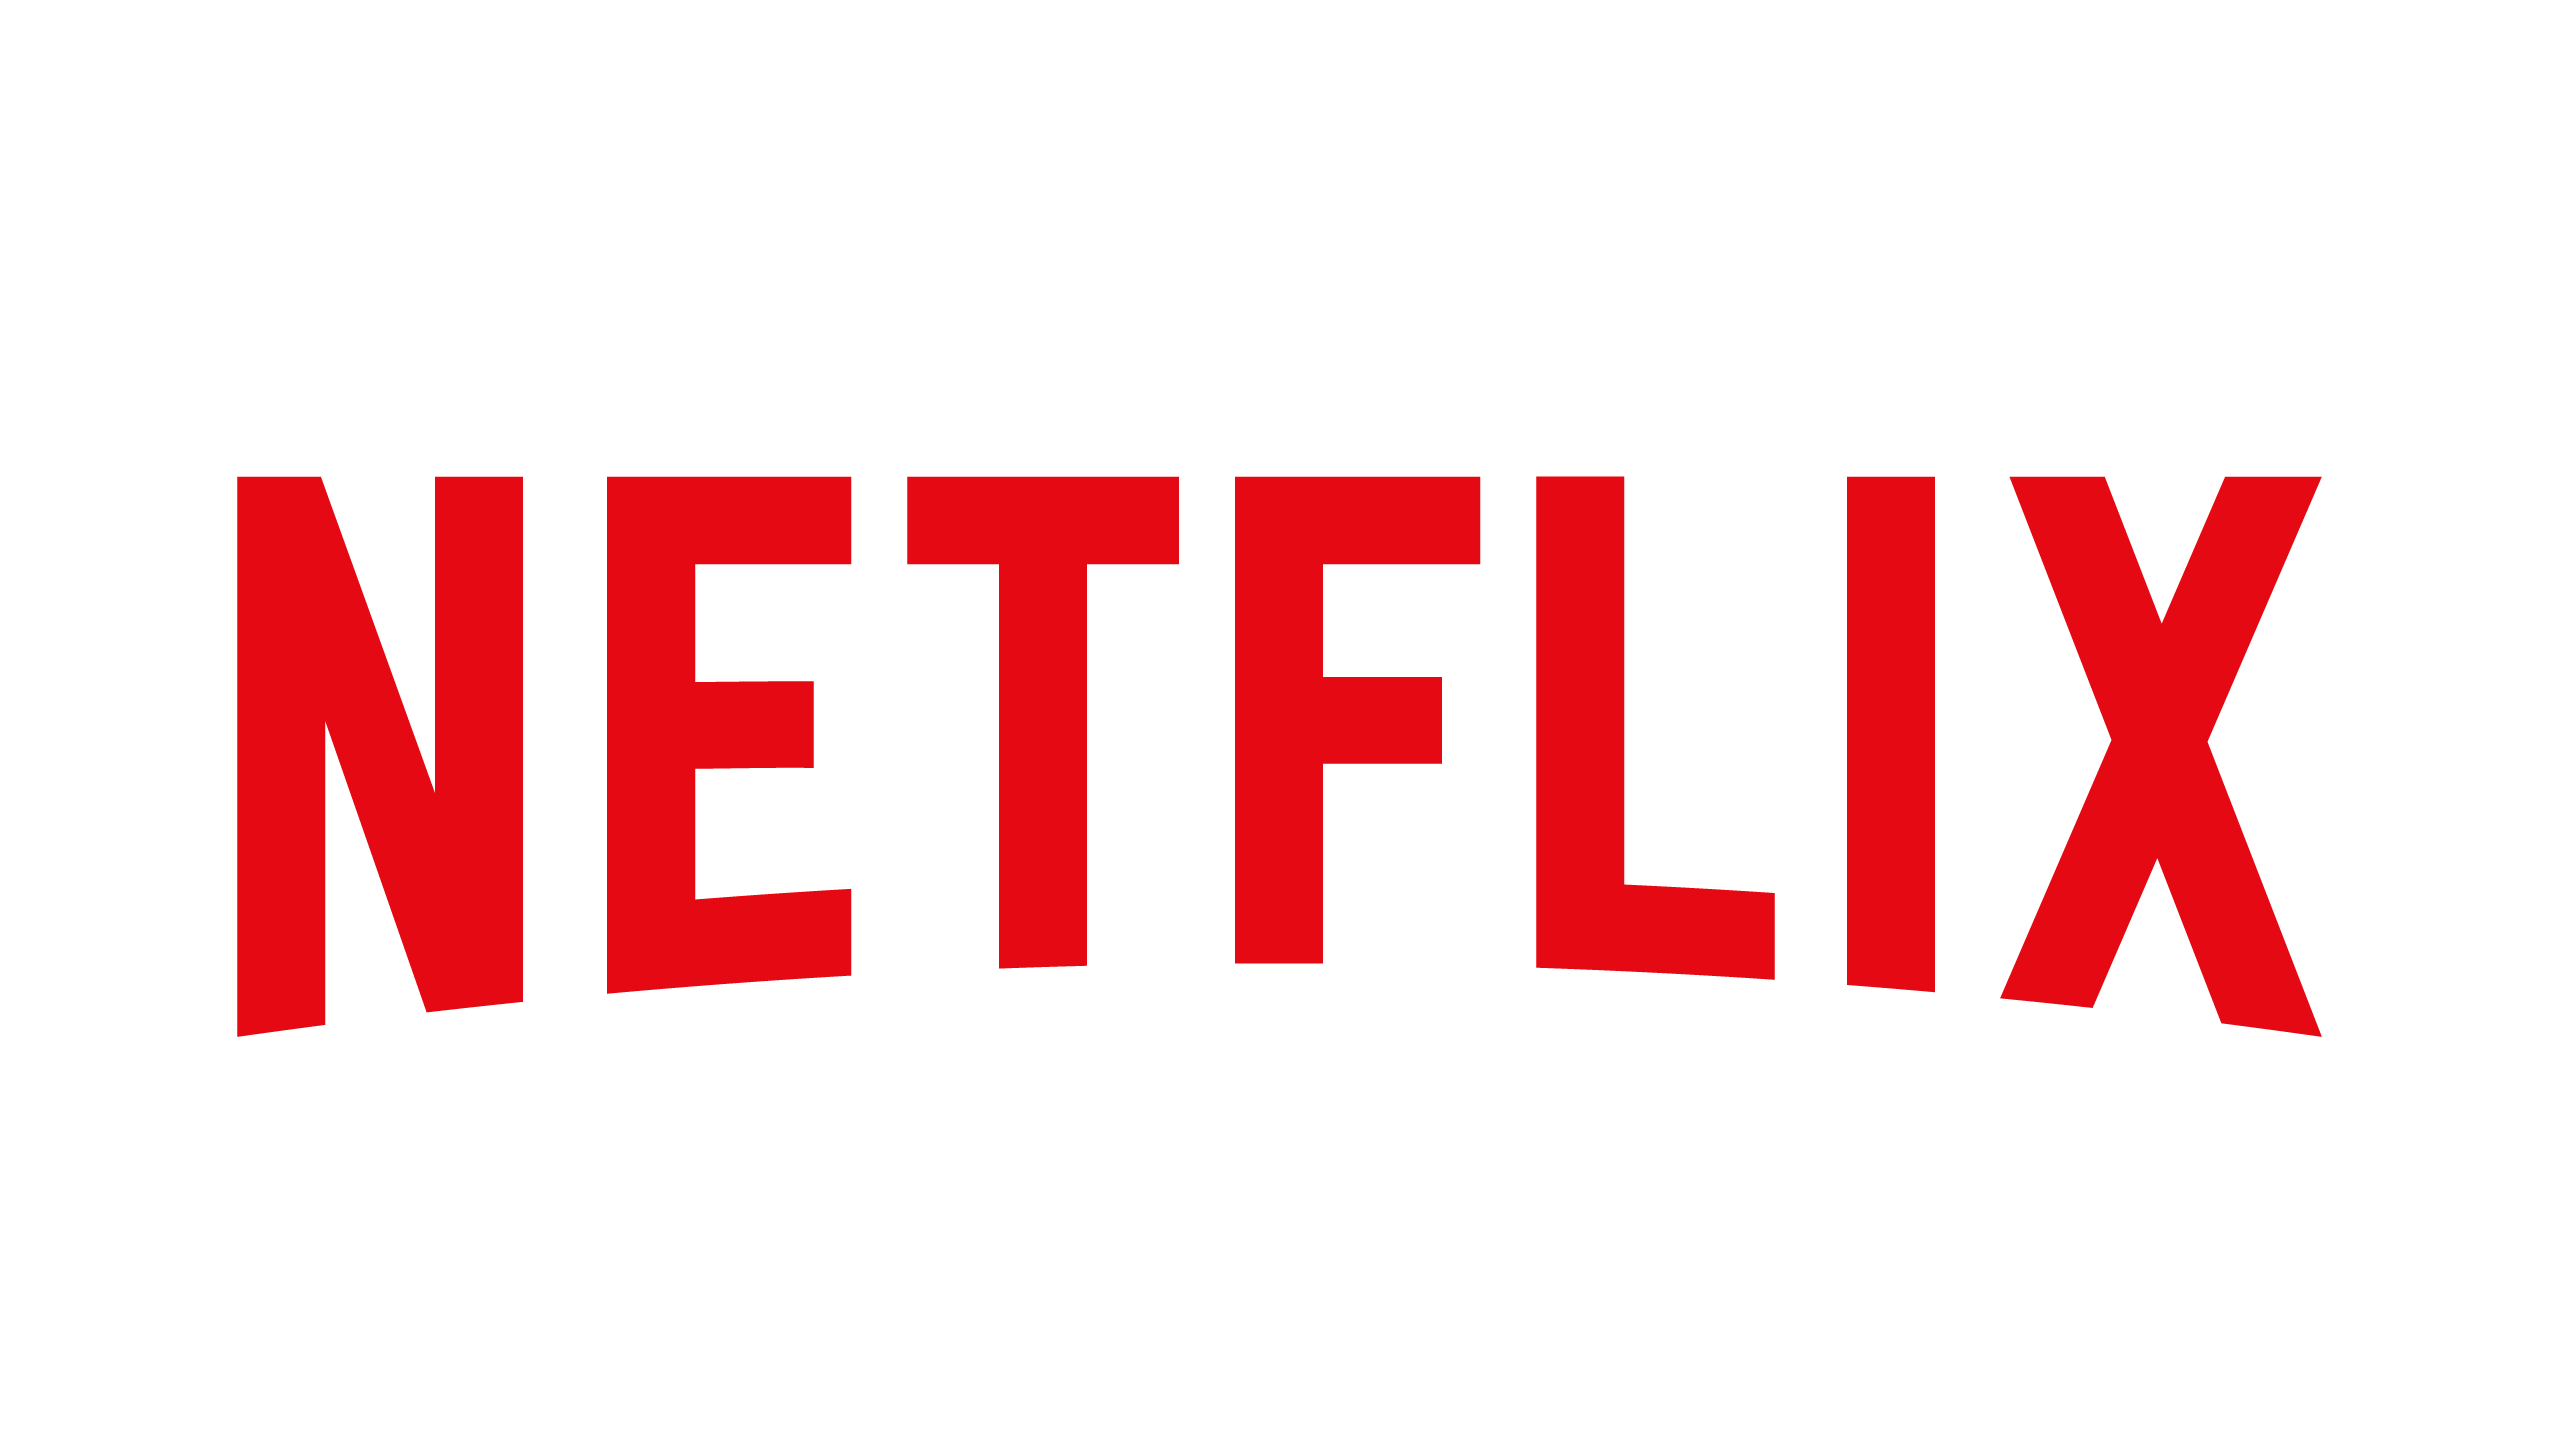 Netflix drawing symbol. Logo transparent png stickpng